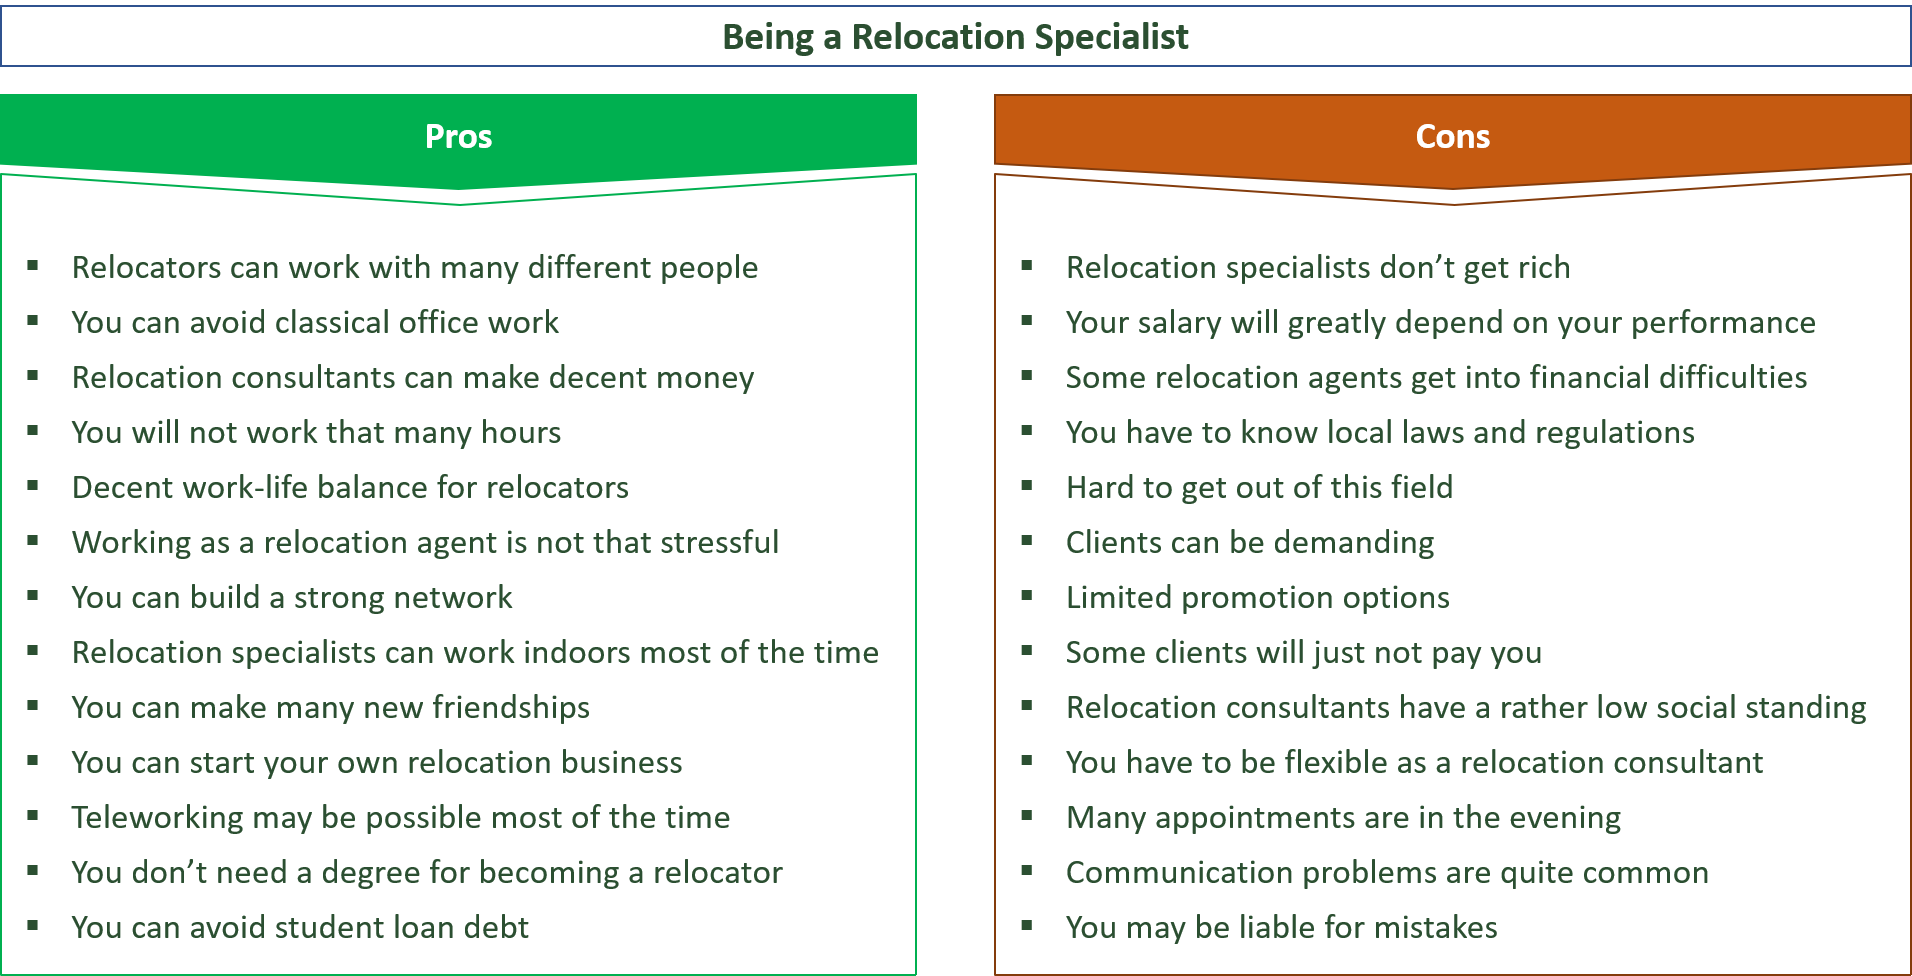 advantages and disadvantages of being a relocation specialist